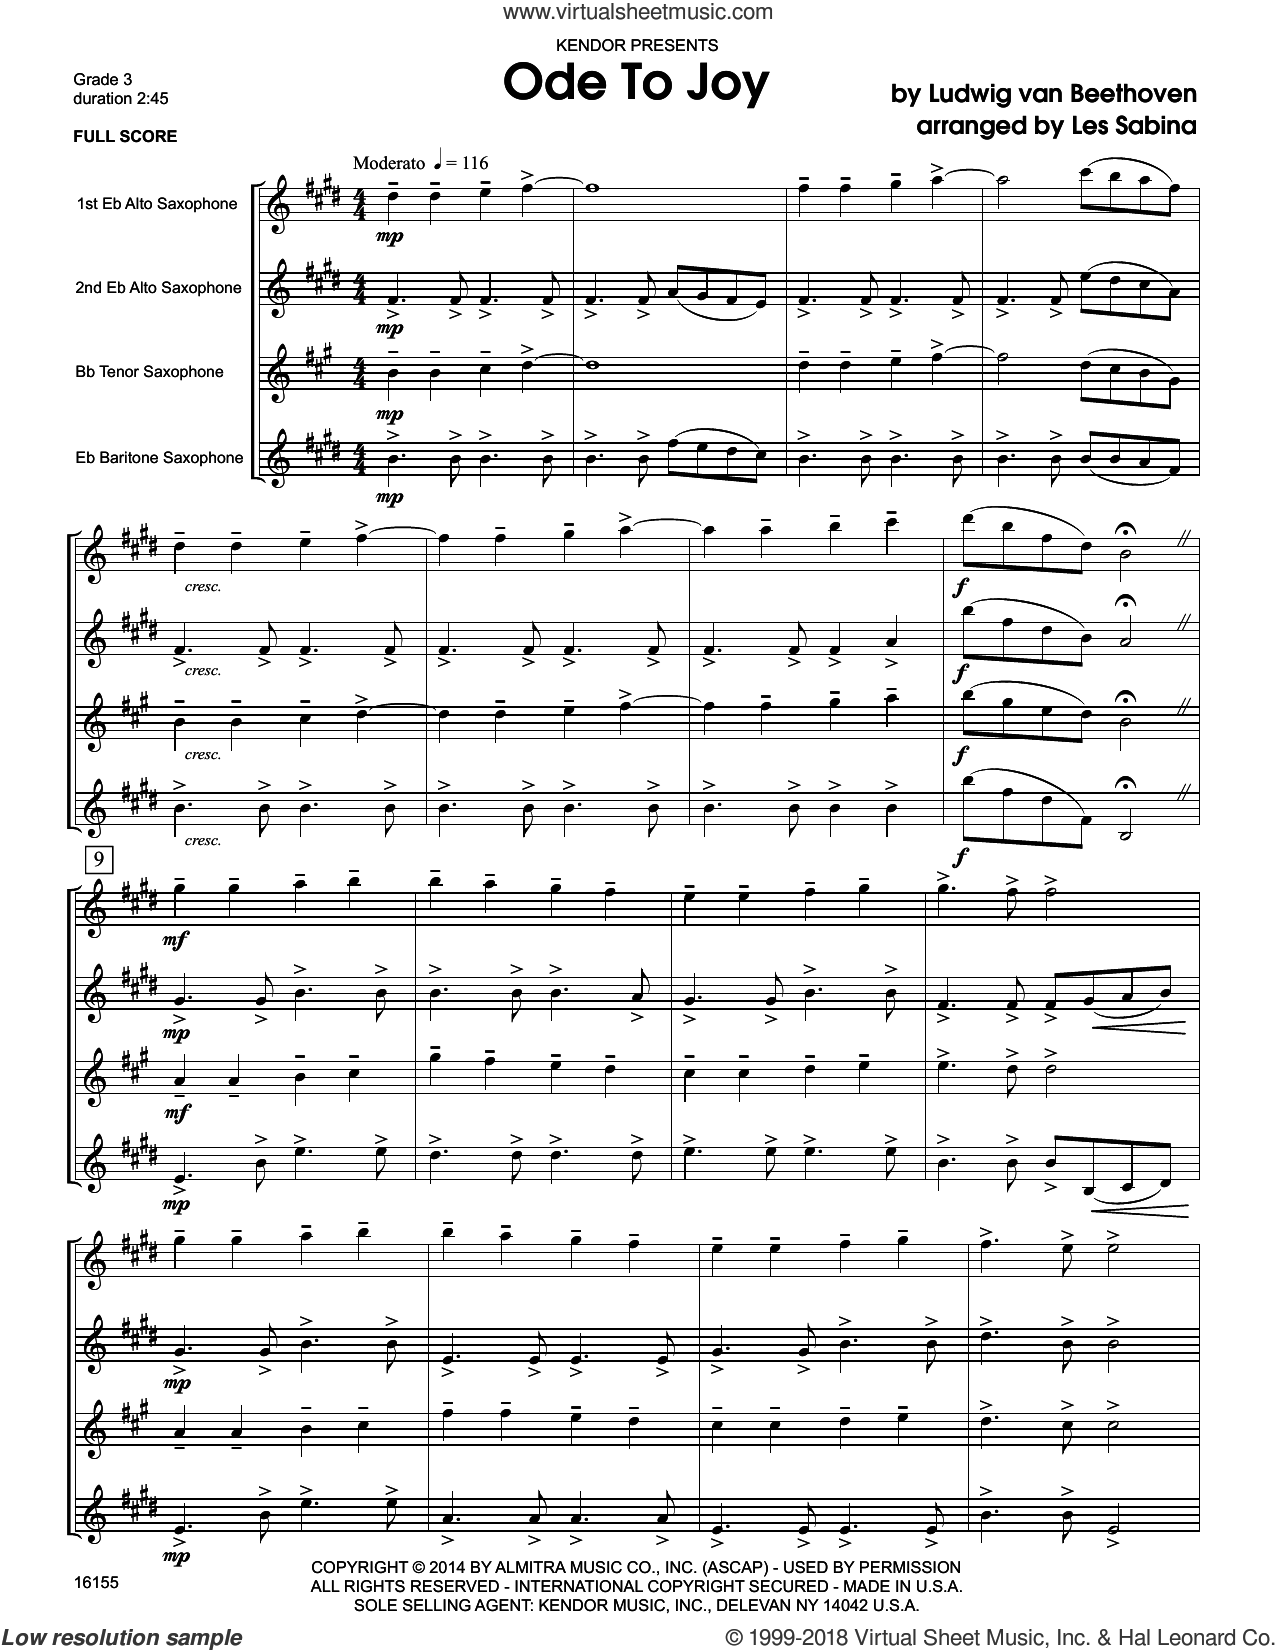 Ode To Joy (COMPLETE) sheet music for saxophone quartet by Ludwig van Beethoven and Les Sabina, intermediate skill level